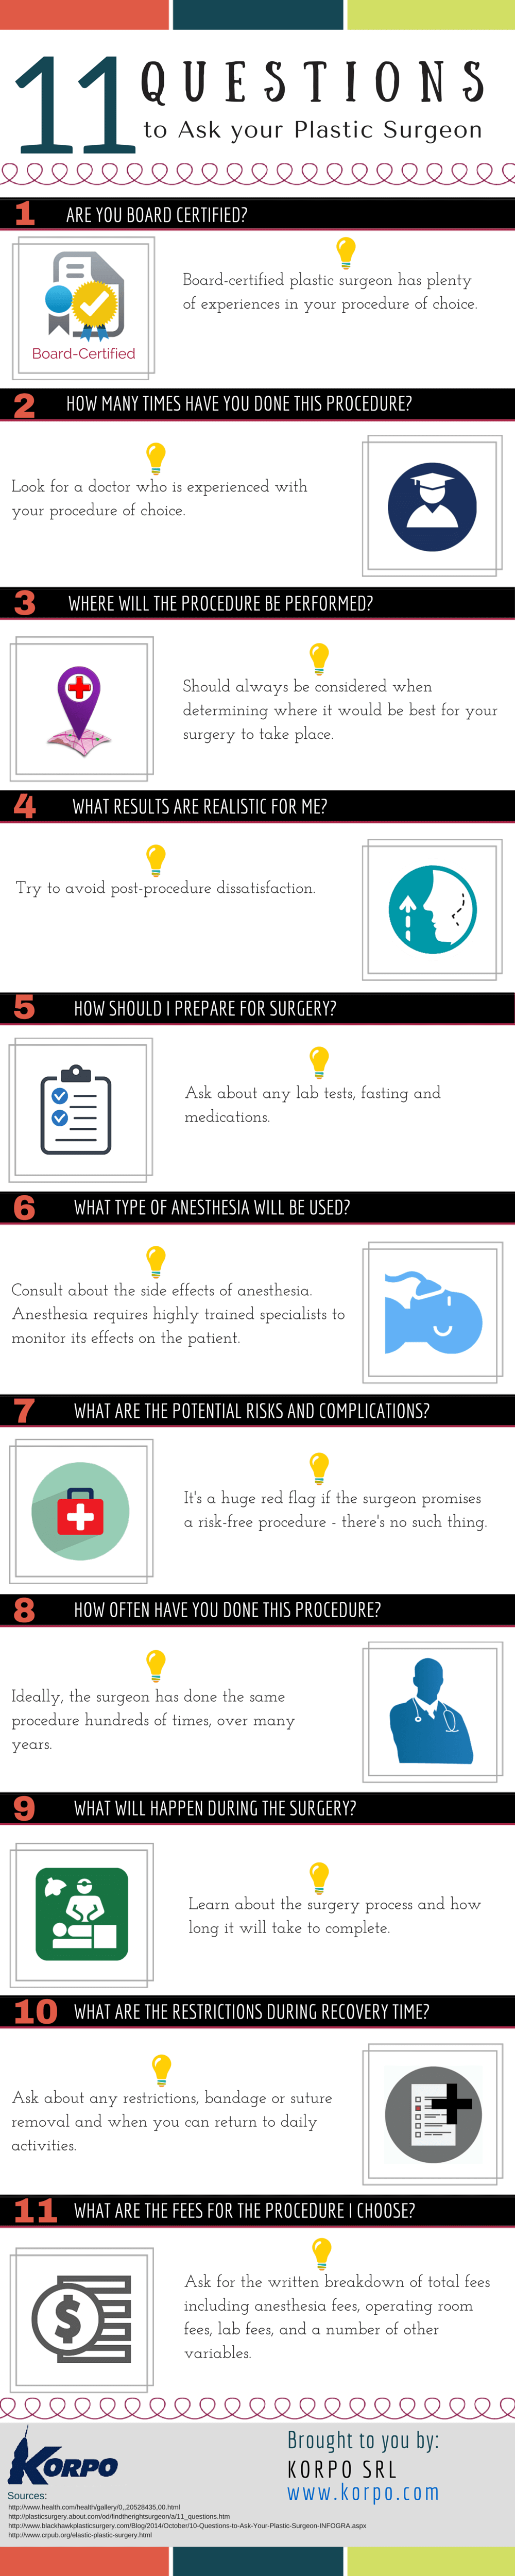 11-questions-to-ask-your-plastic-surgeon-infographic